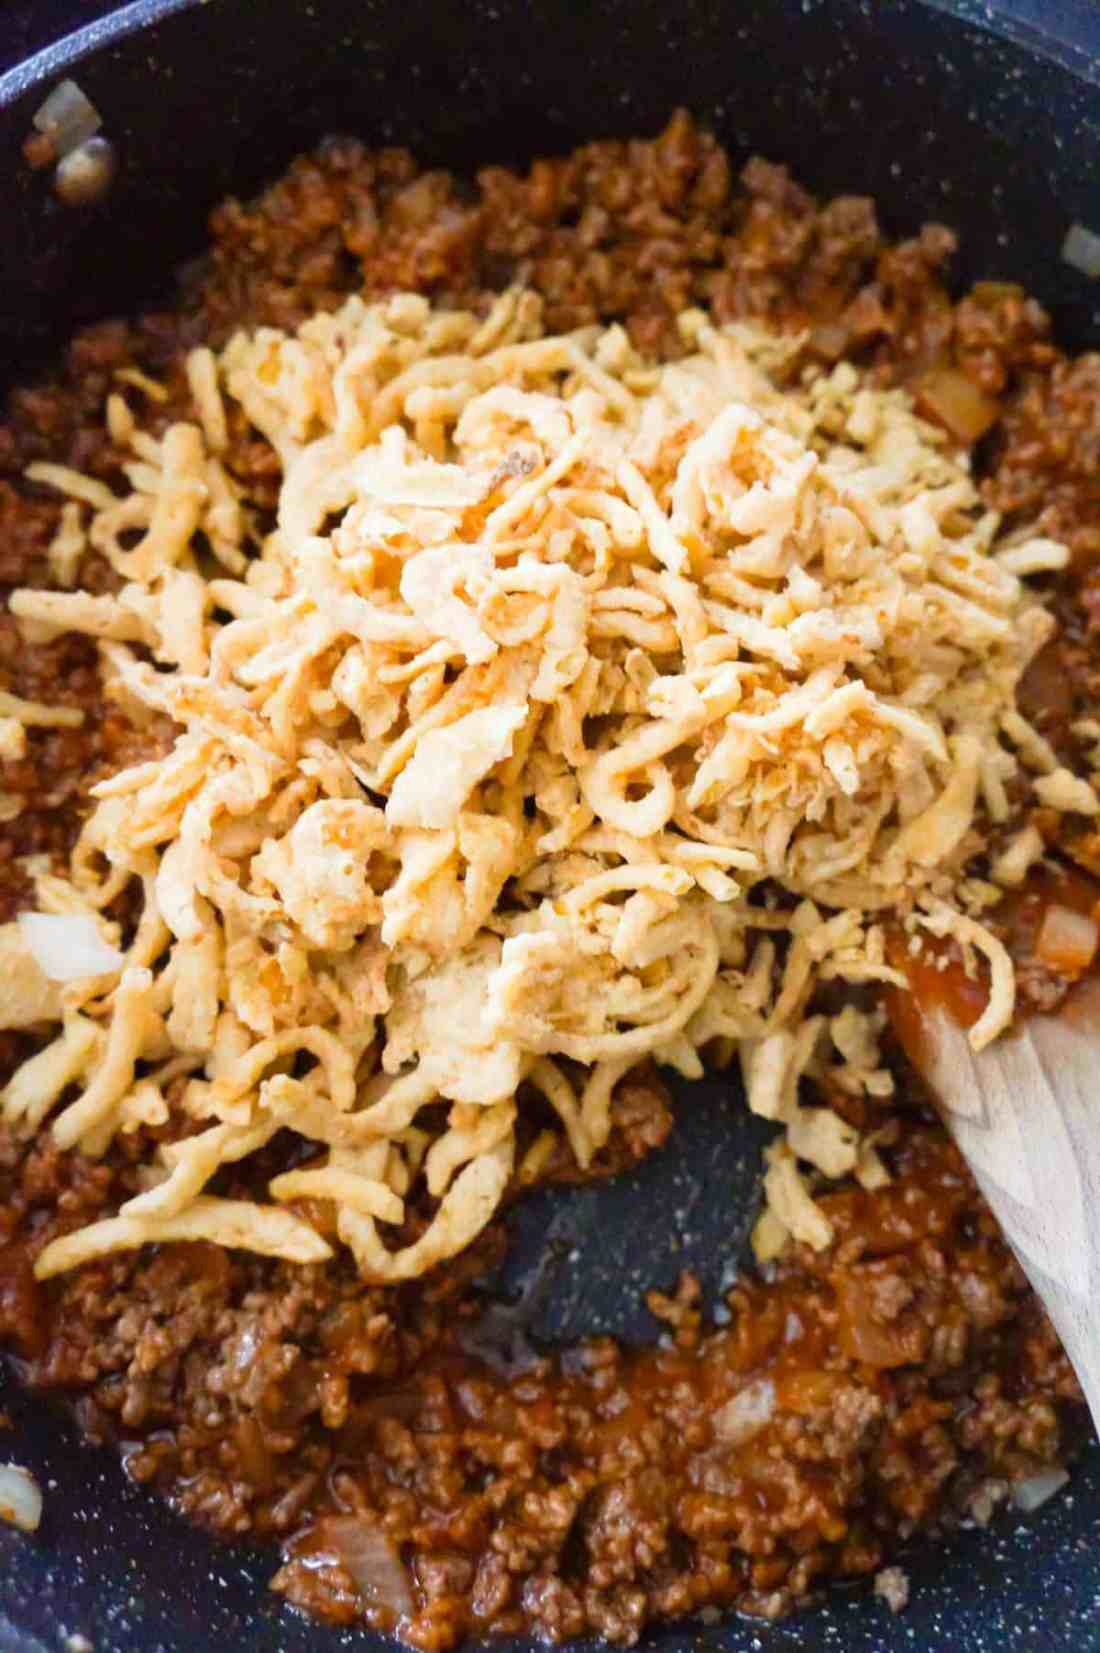 French's fried onions on top of sloppy joe mixture in a saute pan